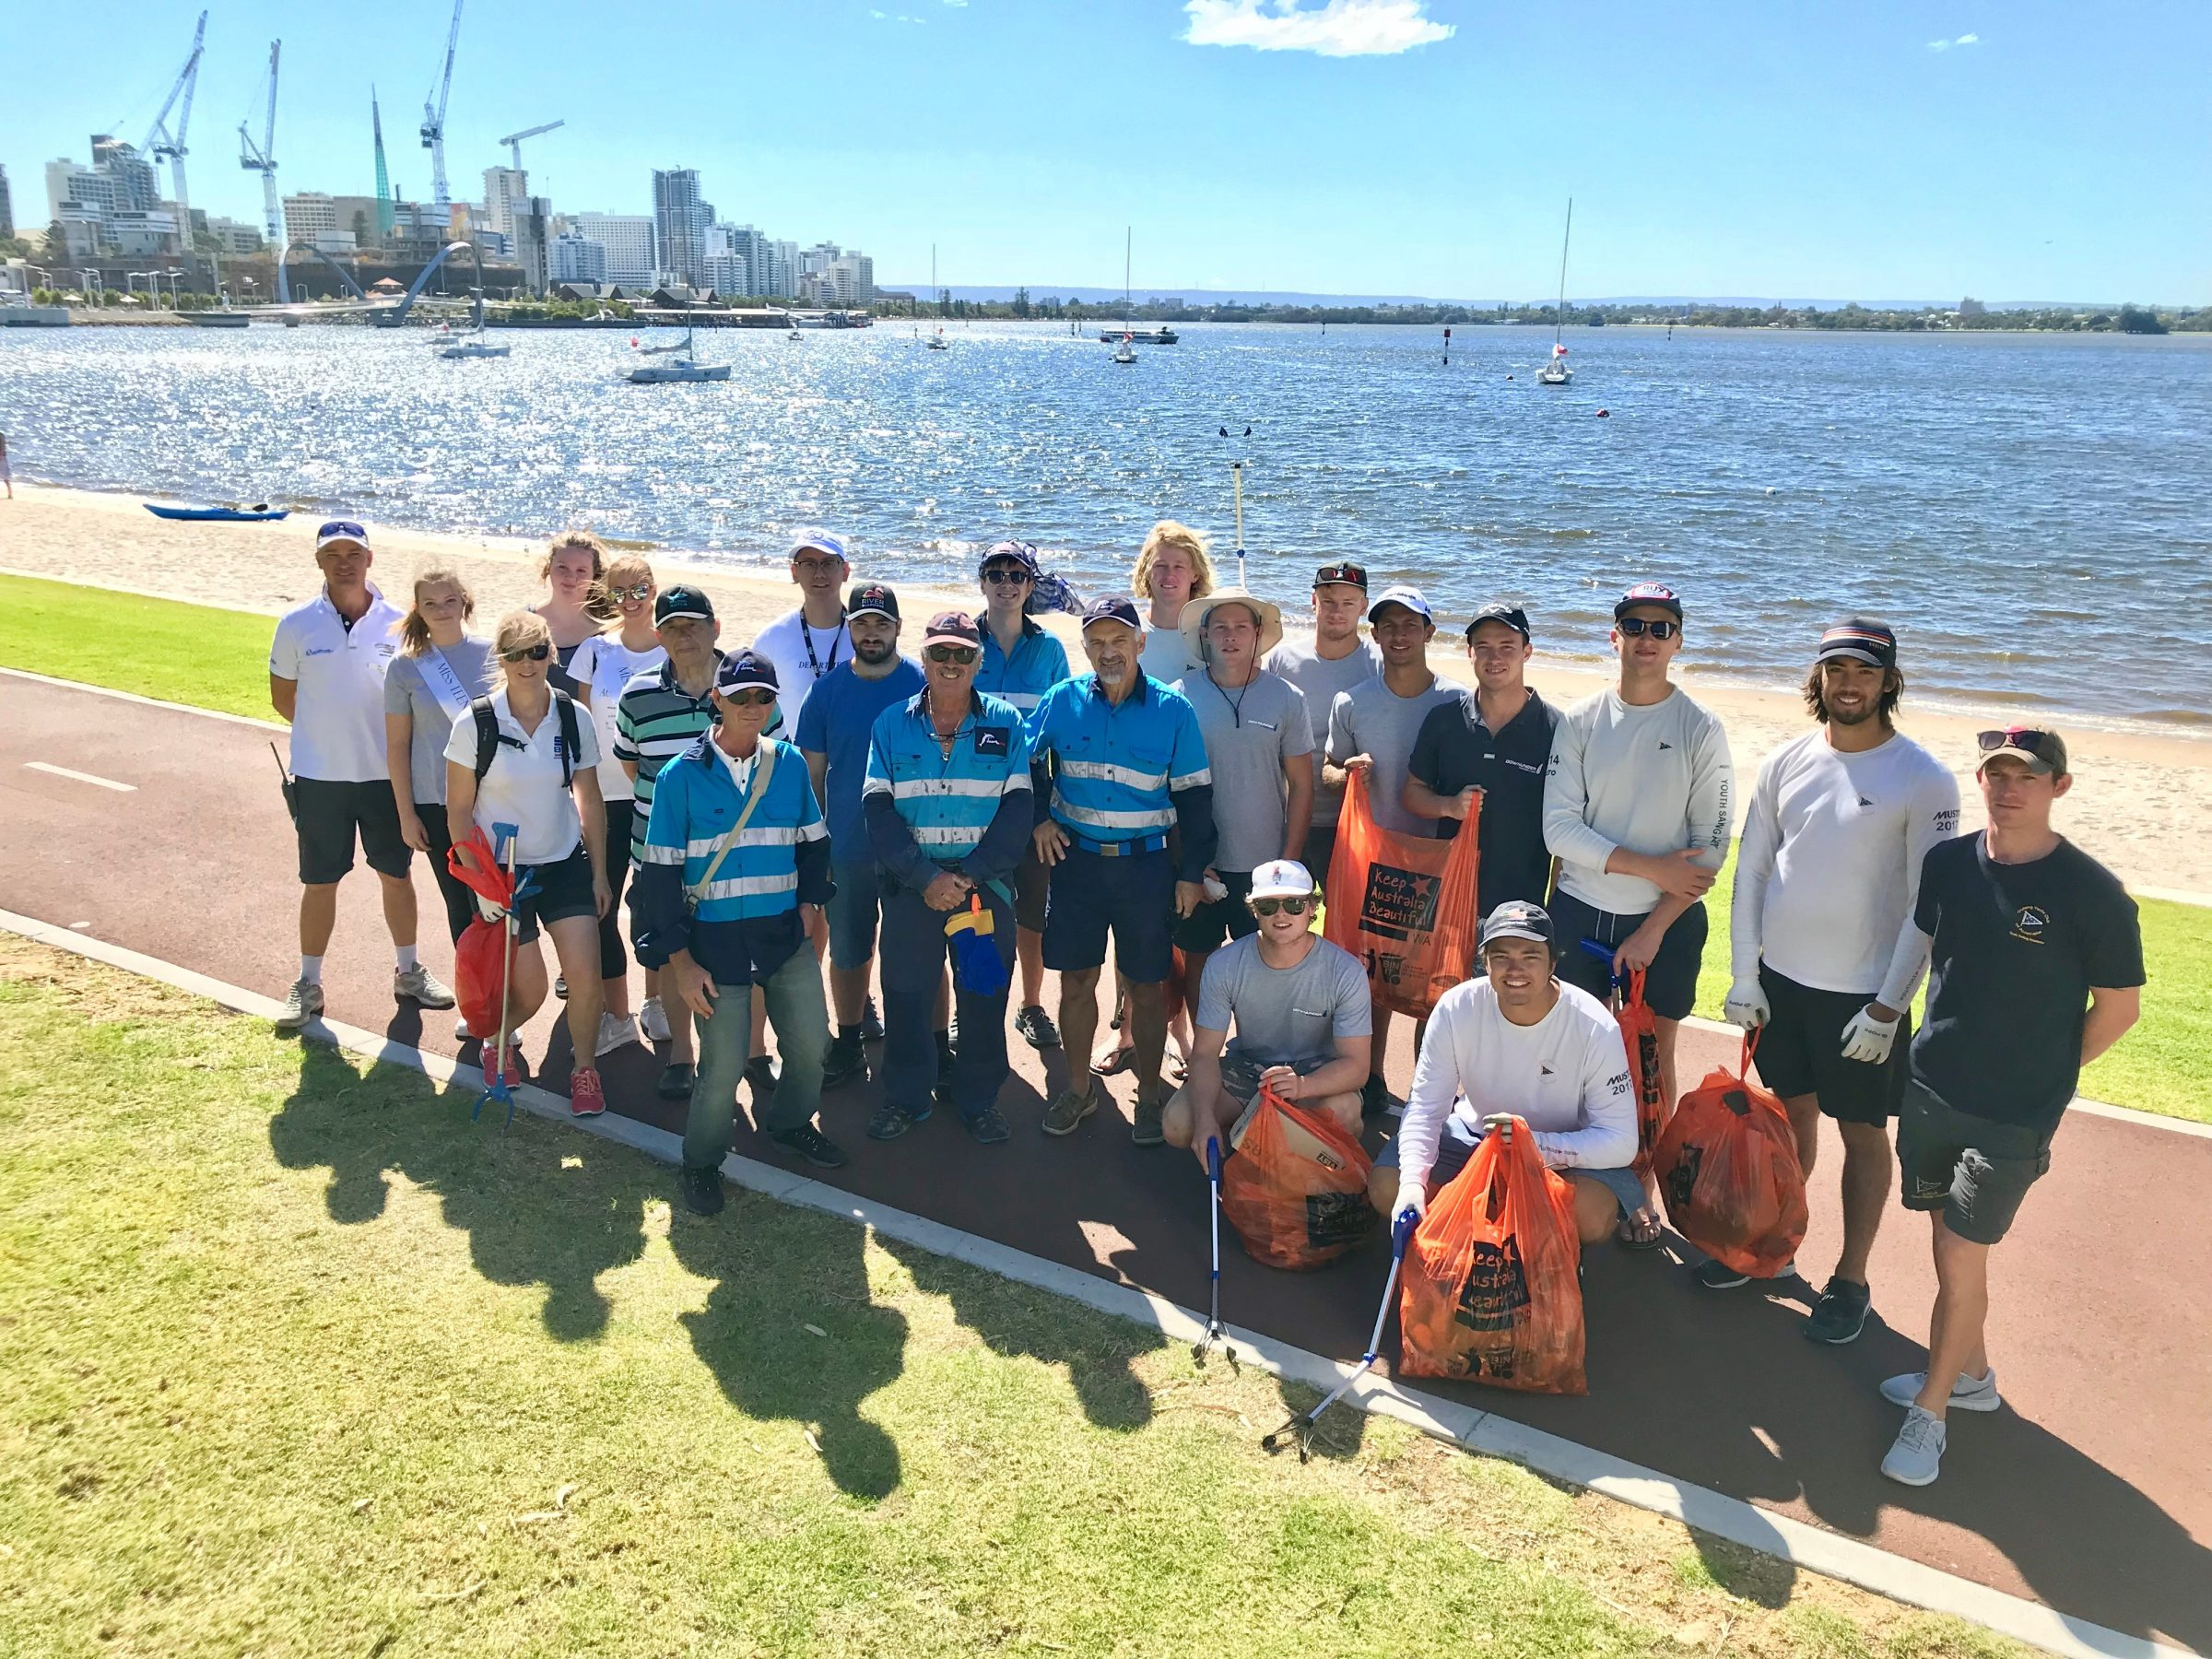 2019 city of perth festival of sail beach clean up on the perth foreshore